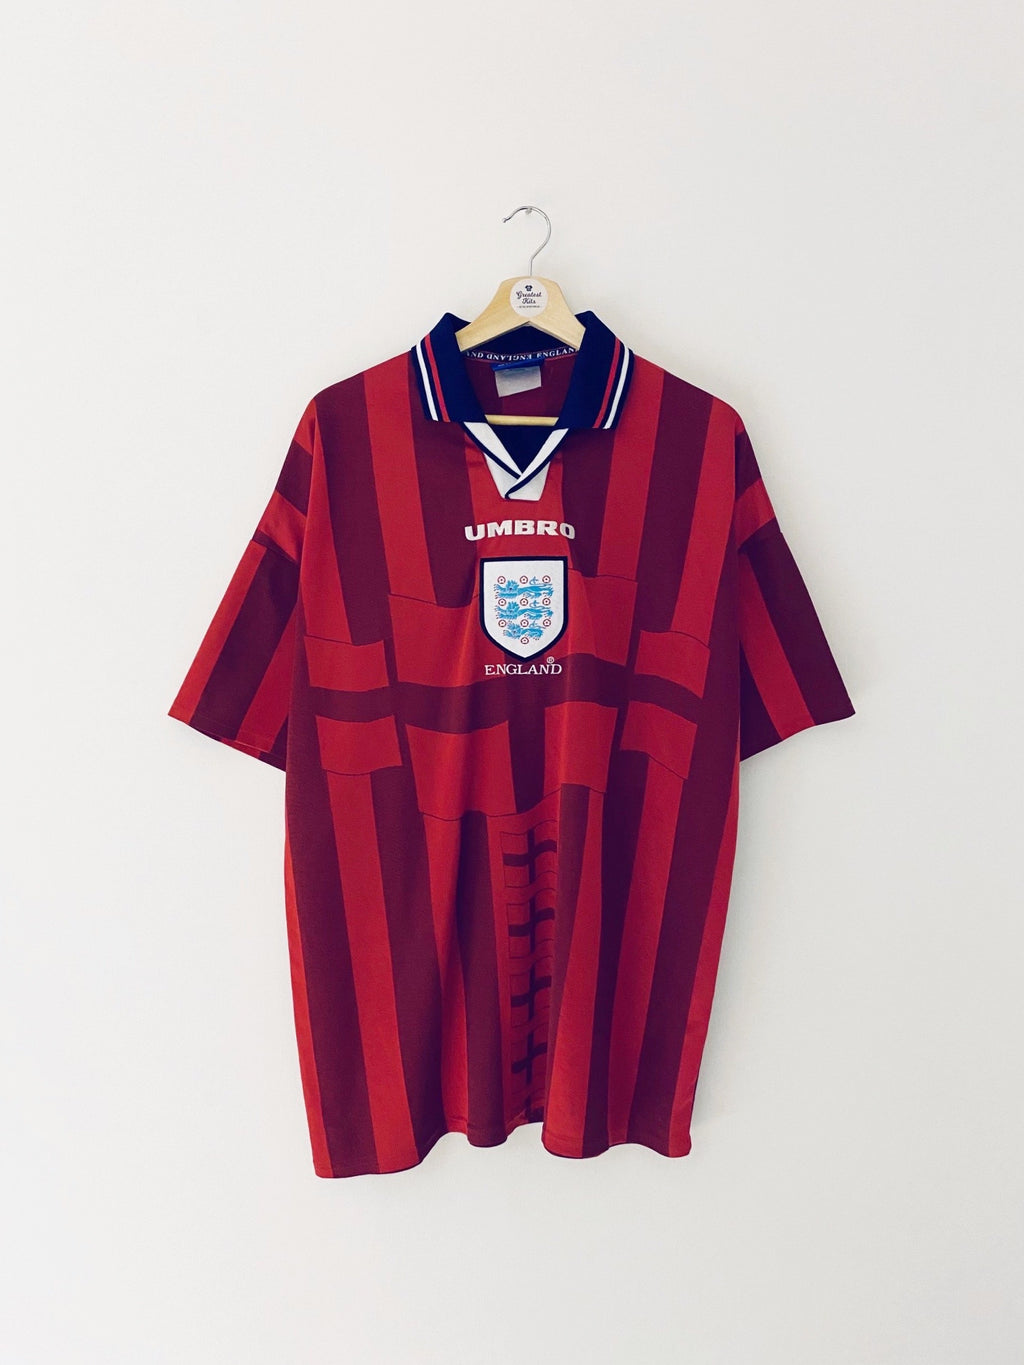 1997/99 England Away Shirt (XL) 8.5/10